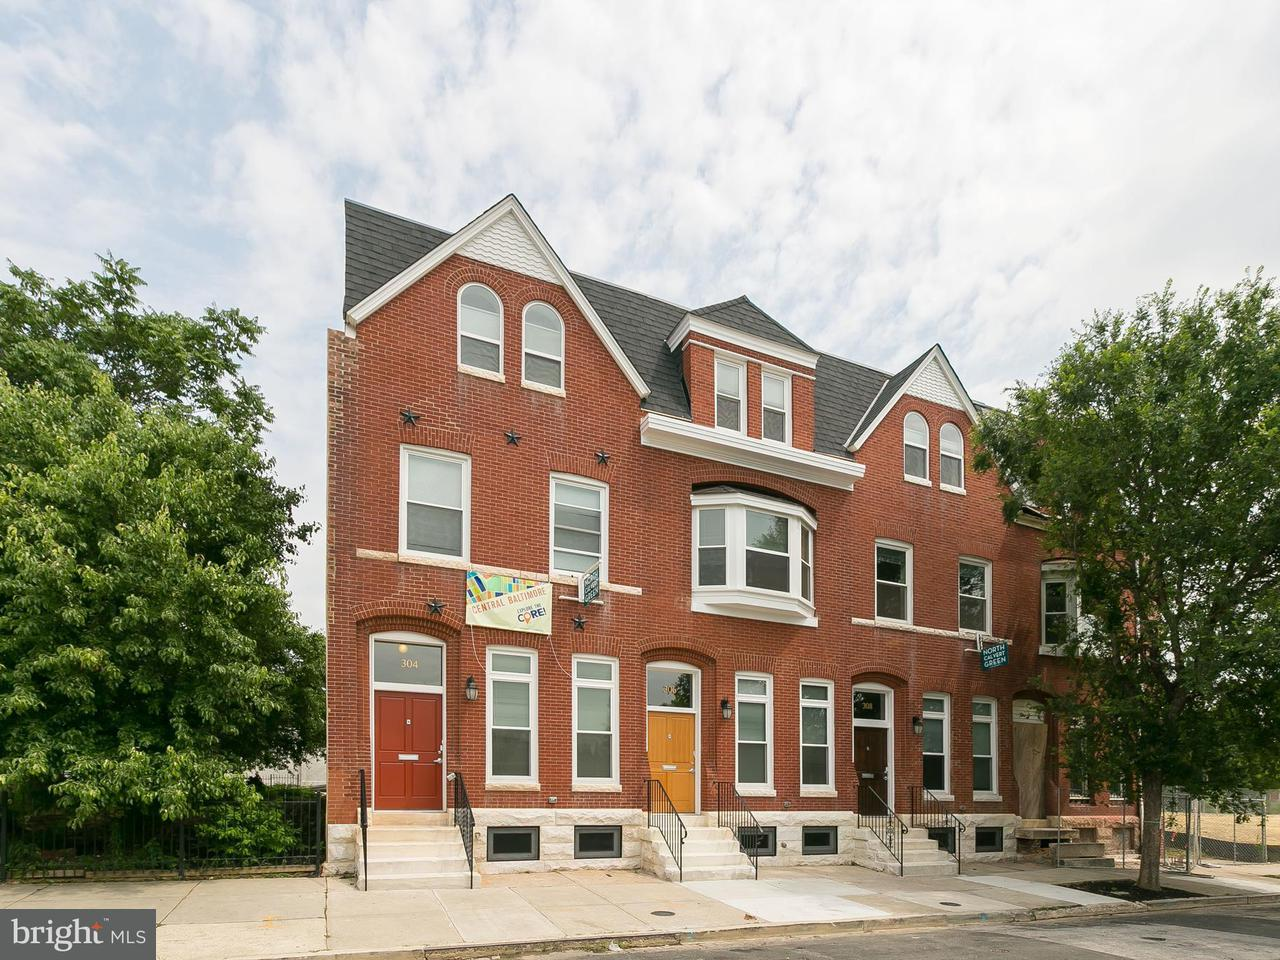 Single Family for Sale at 308 20th St E Baltimore, Maryland 21218 United States